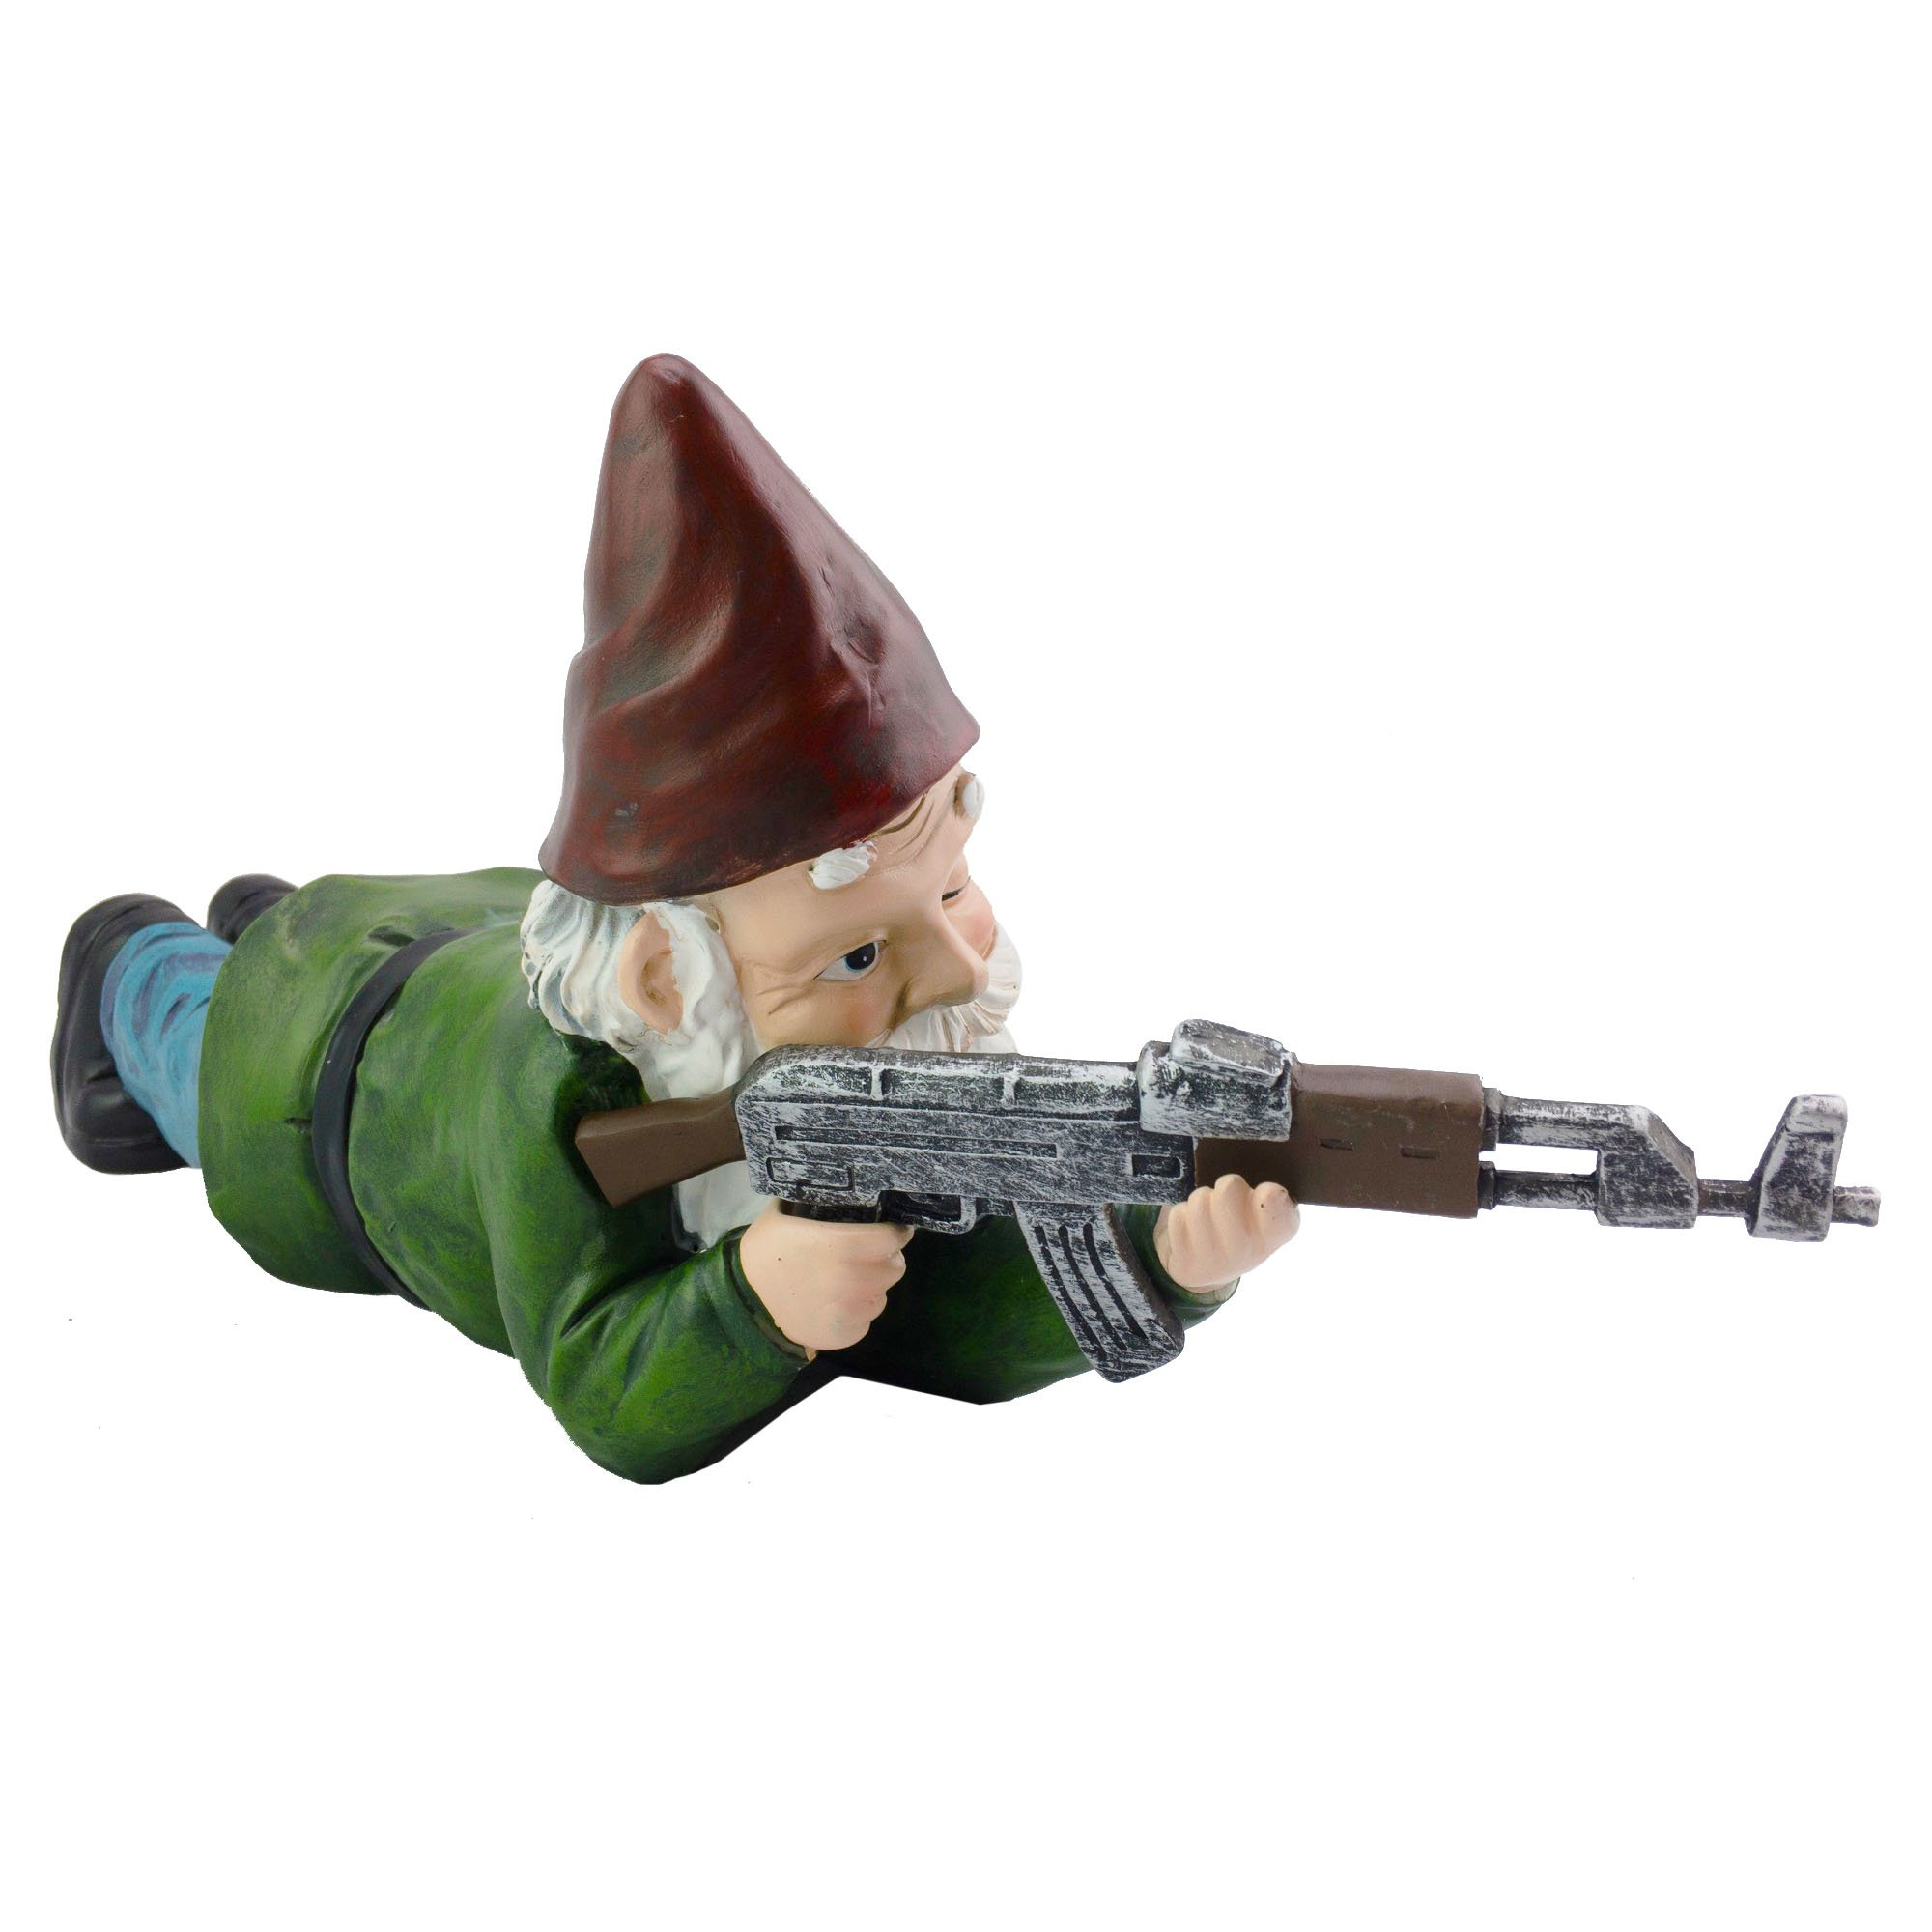 Military Garden Gnome with an AK47 | Funny Army Statue, Perfect for Gun Lovers, Military Collectors, Combat Enthusiasts & Army Men | Indoor & Outdoor Lawn Yard Decor (Prone, Traditional)